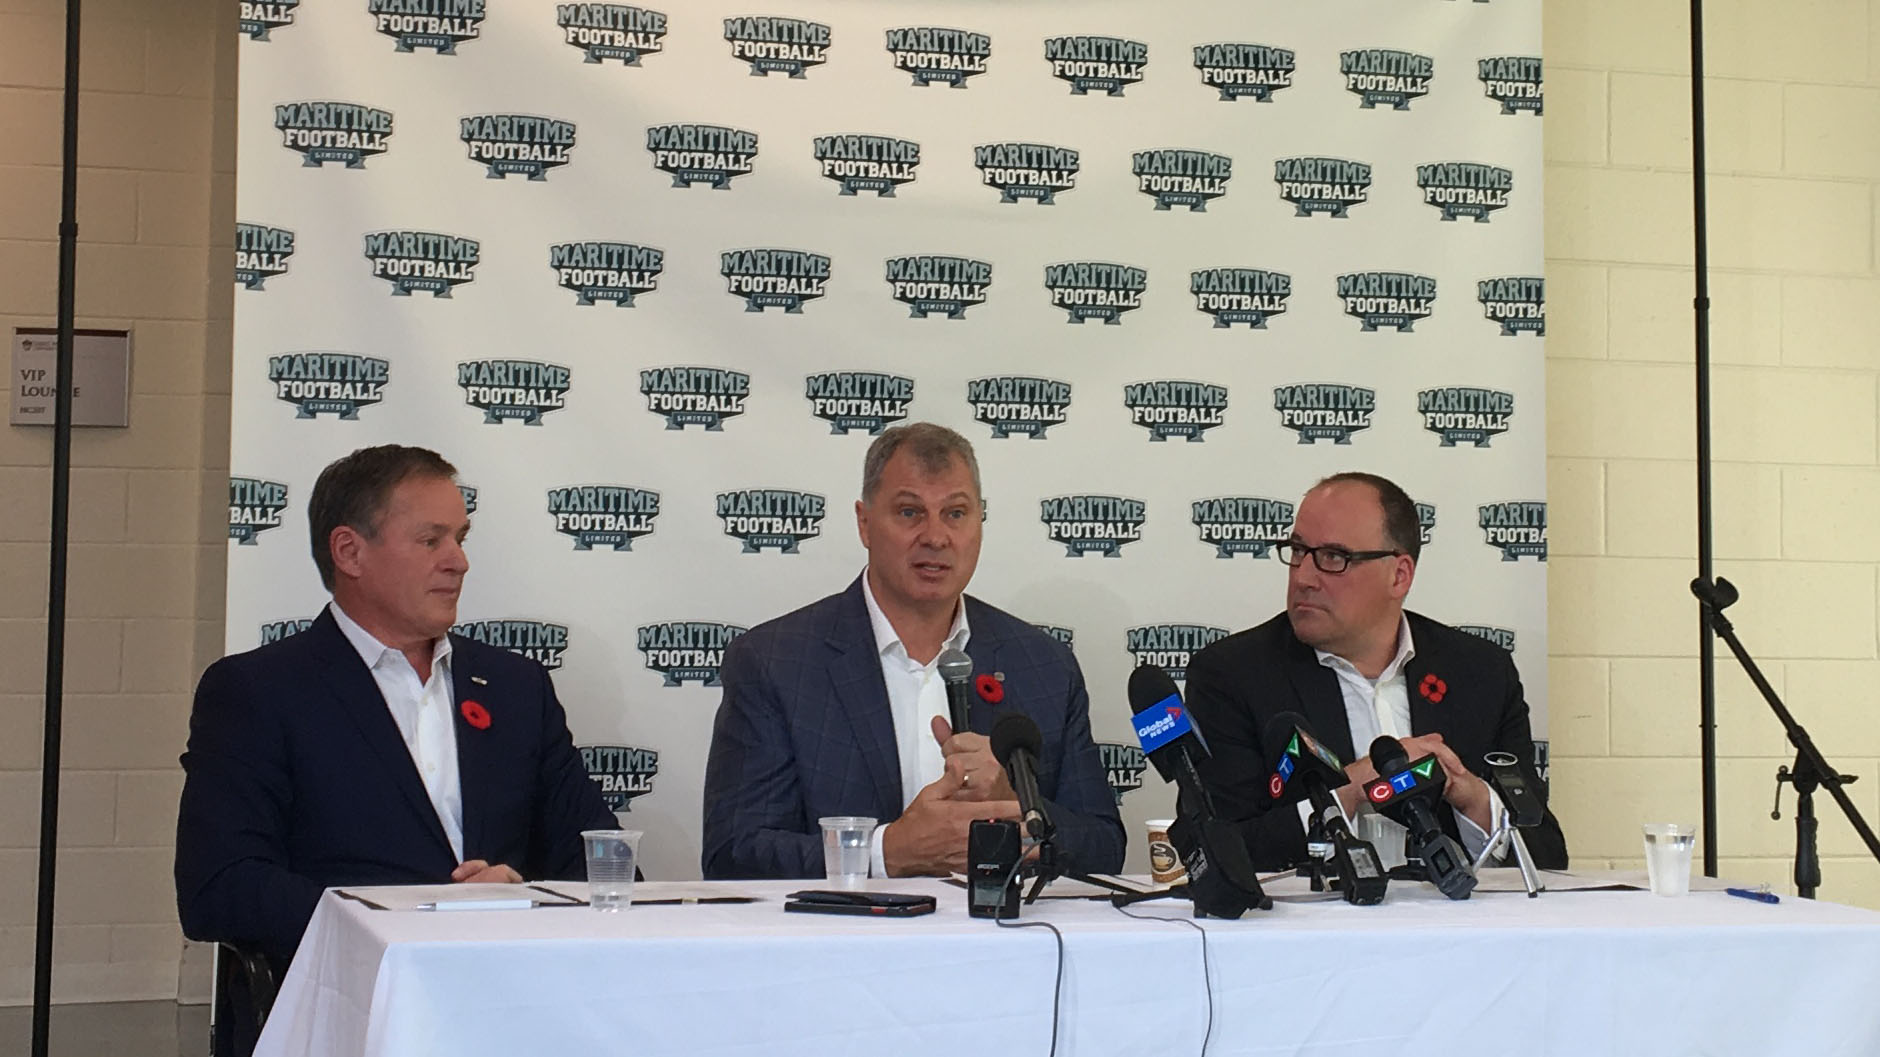 CFL Commissioner Randy Ambrosie (centre) answers questions while Bruce Bowser (left) and Anthony LeBlanc (right) founding partners of Maritime Football Ltd. listen at the Nov. 7 press conference